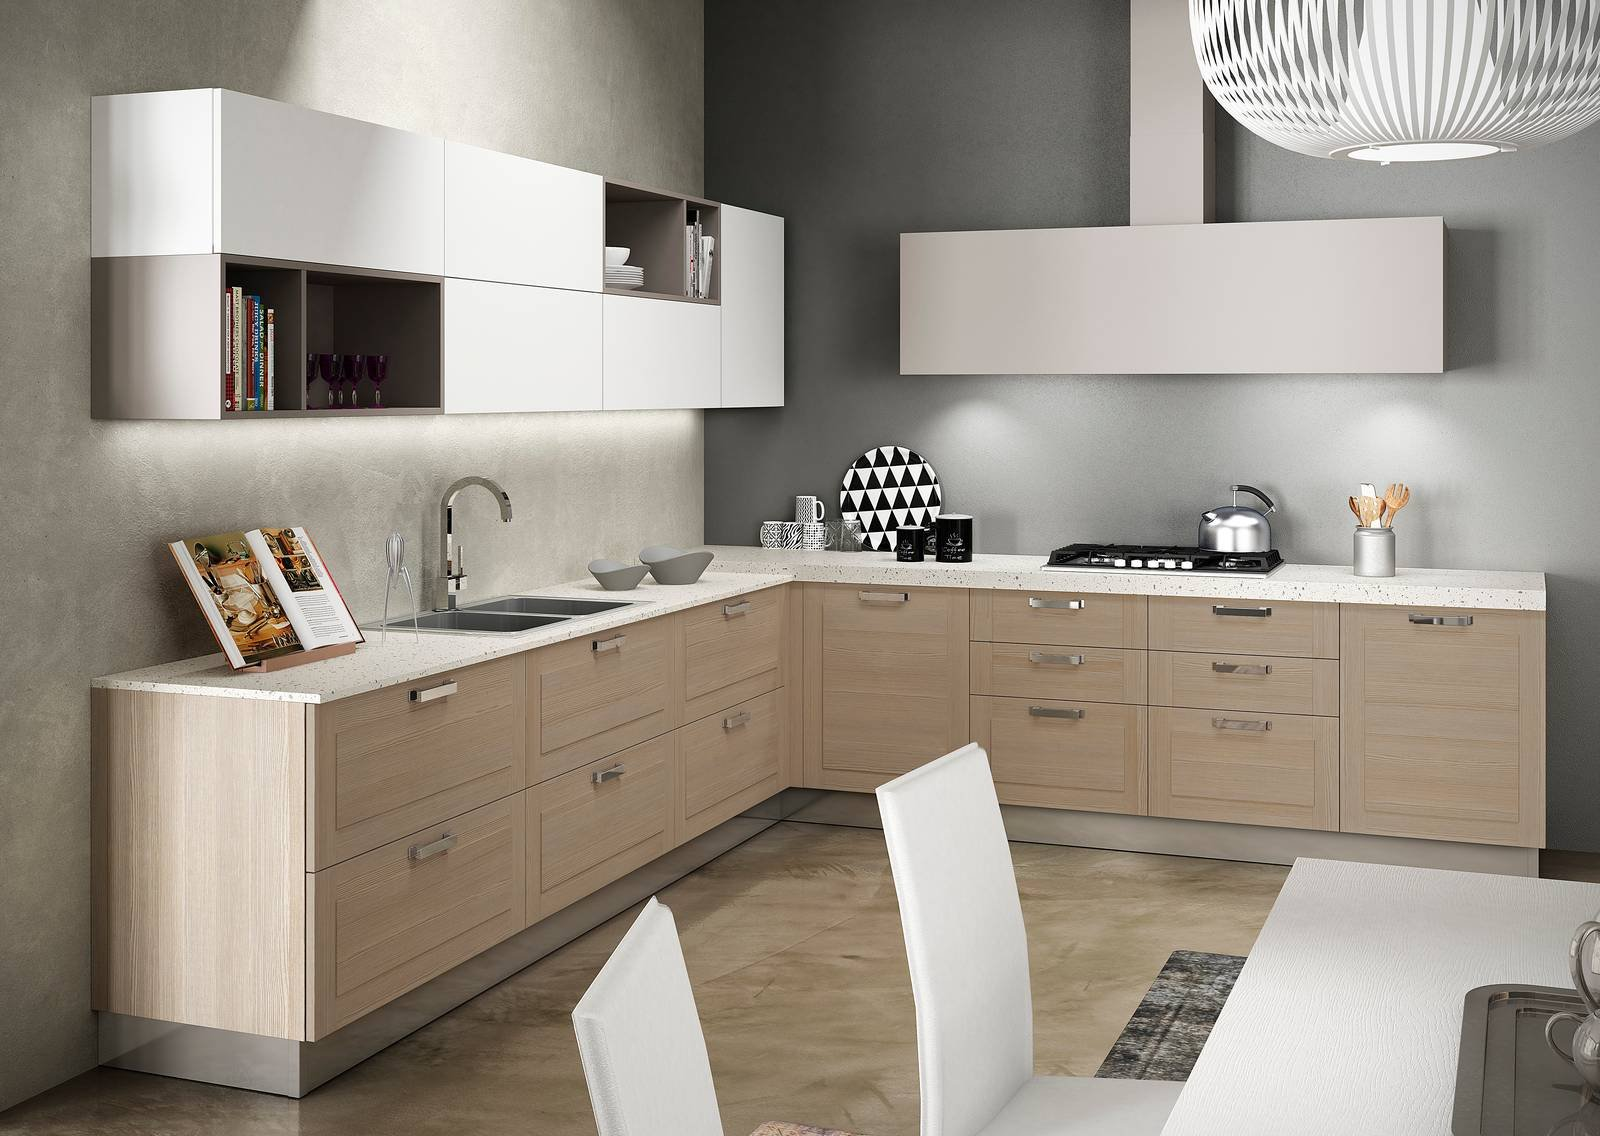 Stunning Cucine Usate Catania Pictures - bakeroffroad.us ...